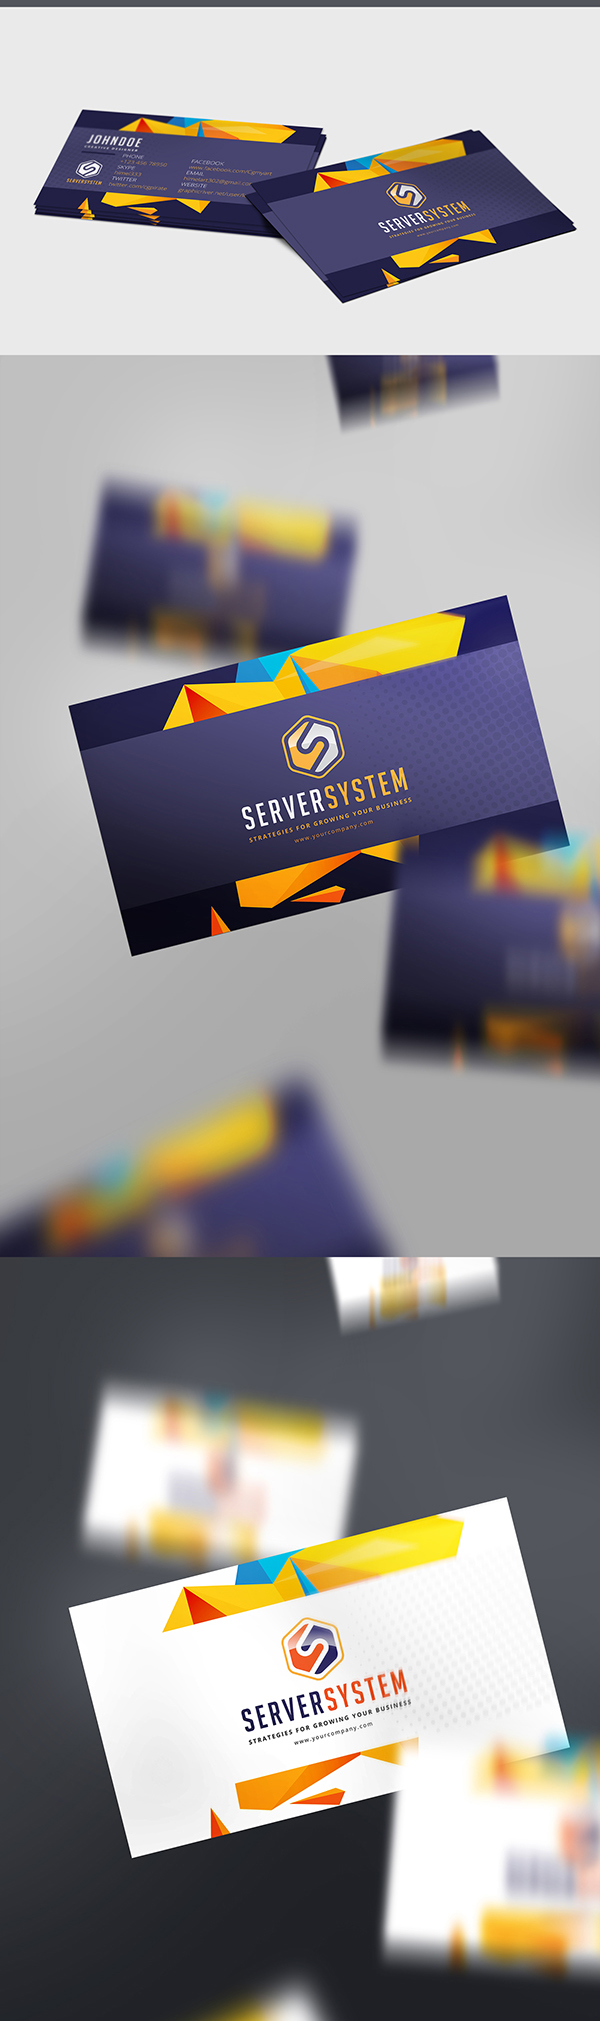 11 Free Busines Card Mockup